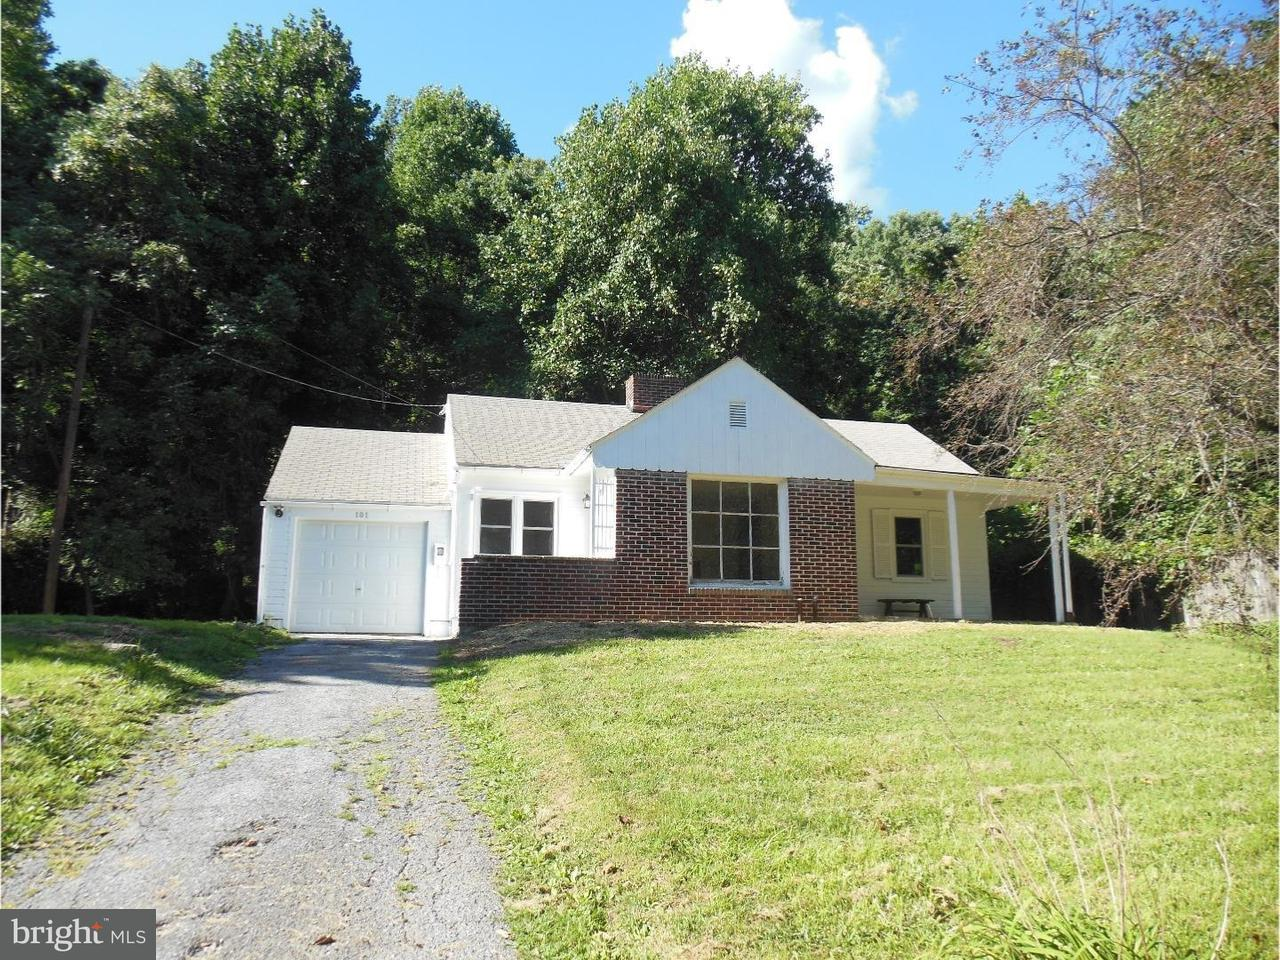 Single Family Home for Rent at 101 SUNRISE Drive Pottstown, Pennsylvania 19465 United States